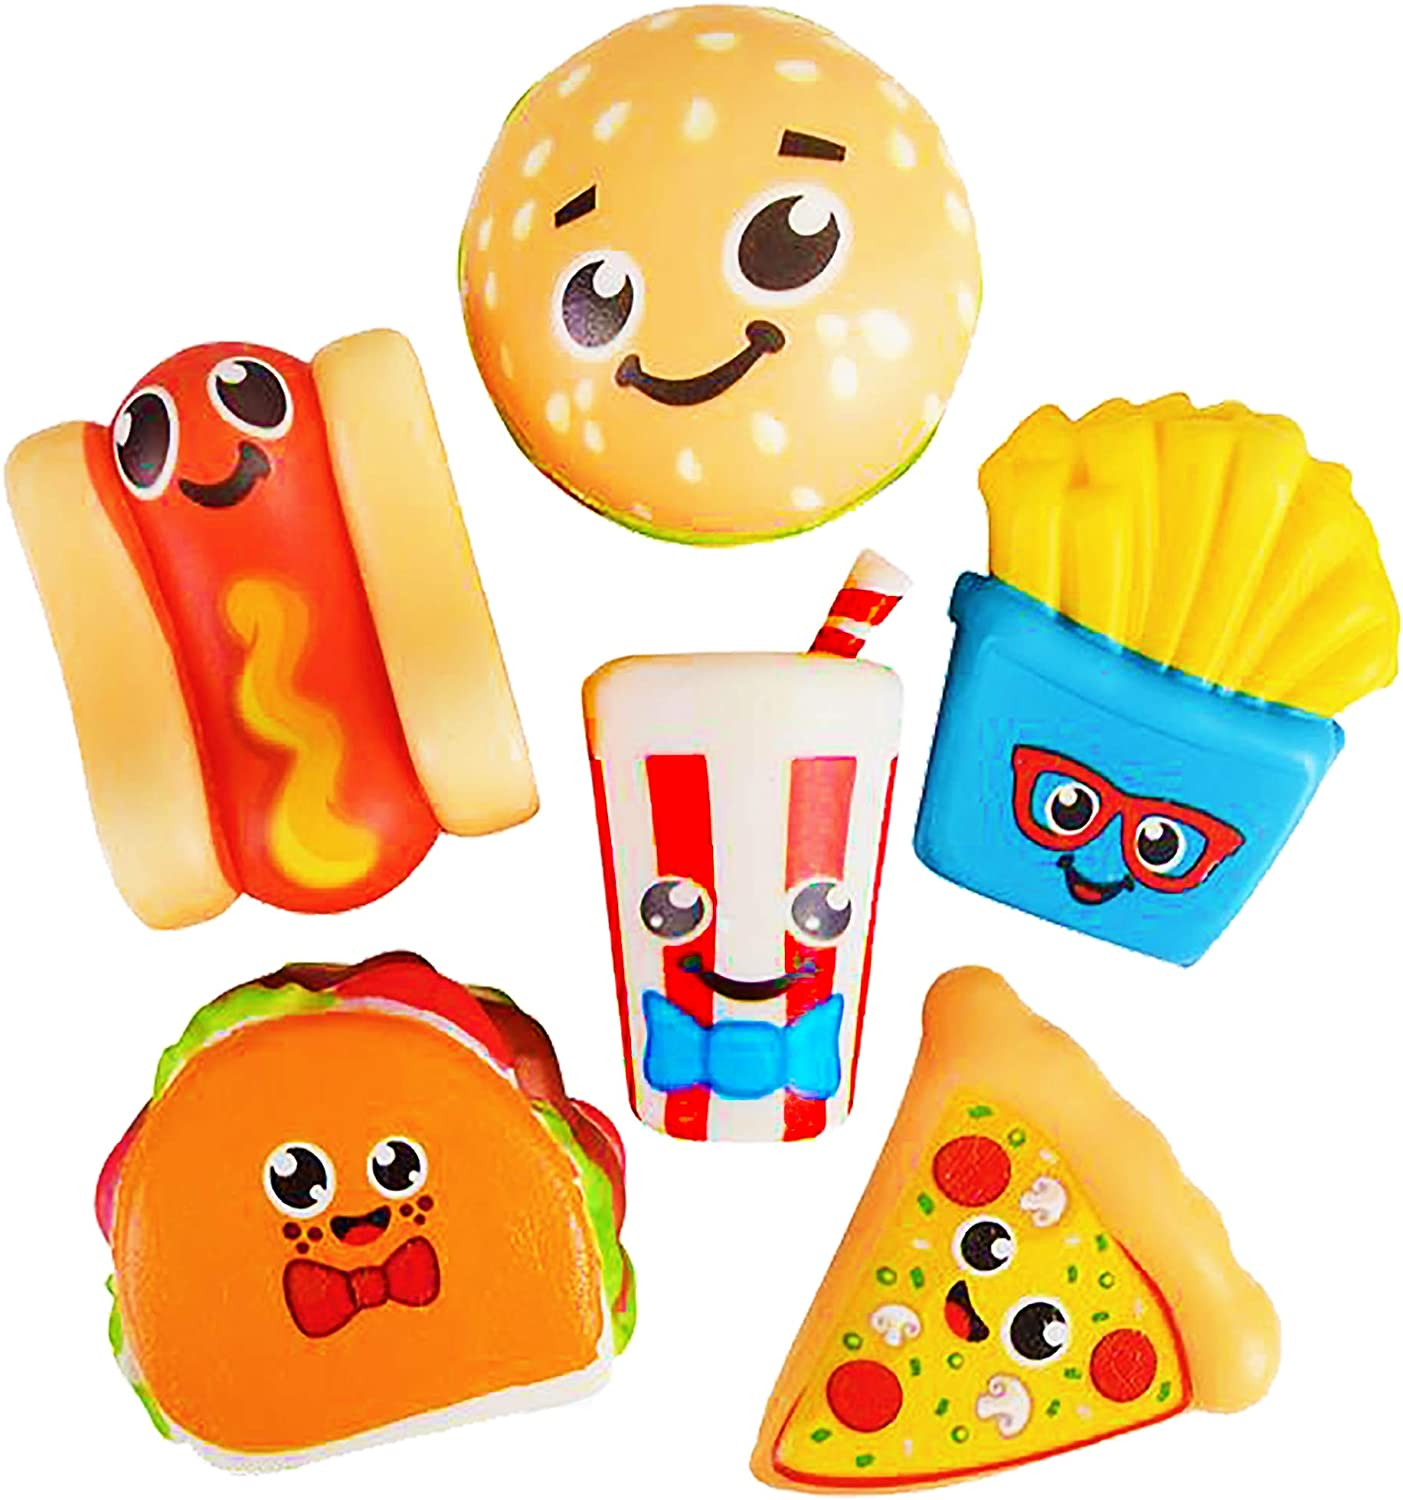 6 Squishy Toys for Kids Fast Food, Slow Rising Squishies - Cute Pack Taco Pizza Burger 3.75 Inch - Stress Relief Fidget Soft Squeeze Kawaii Toy Great Gift for Boys & Girls by 4E's Novelty